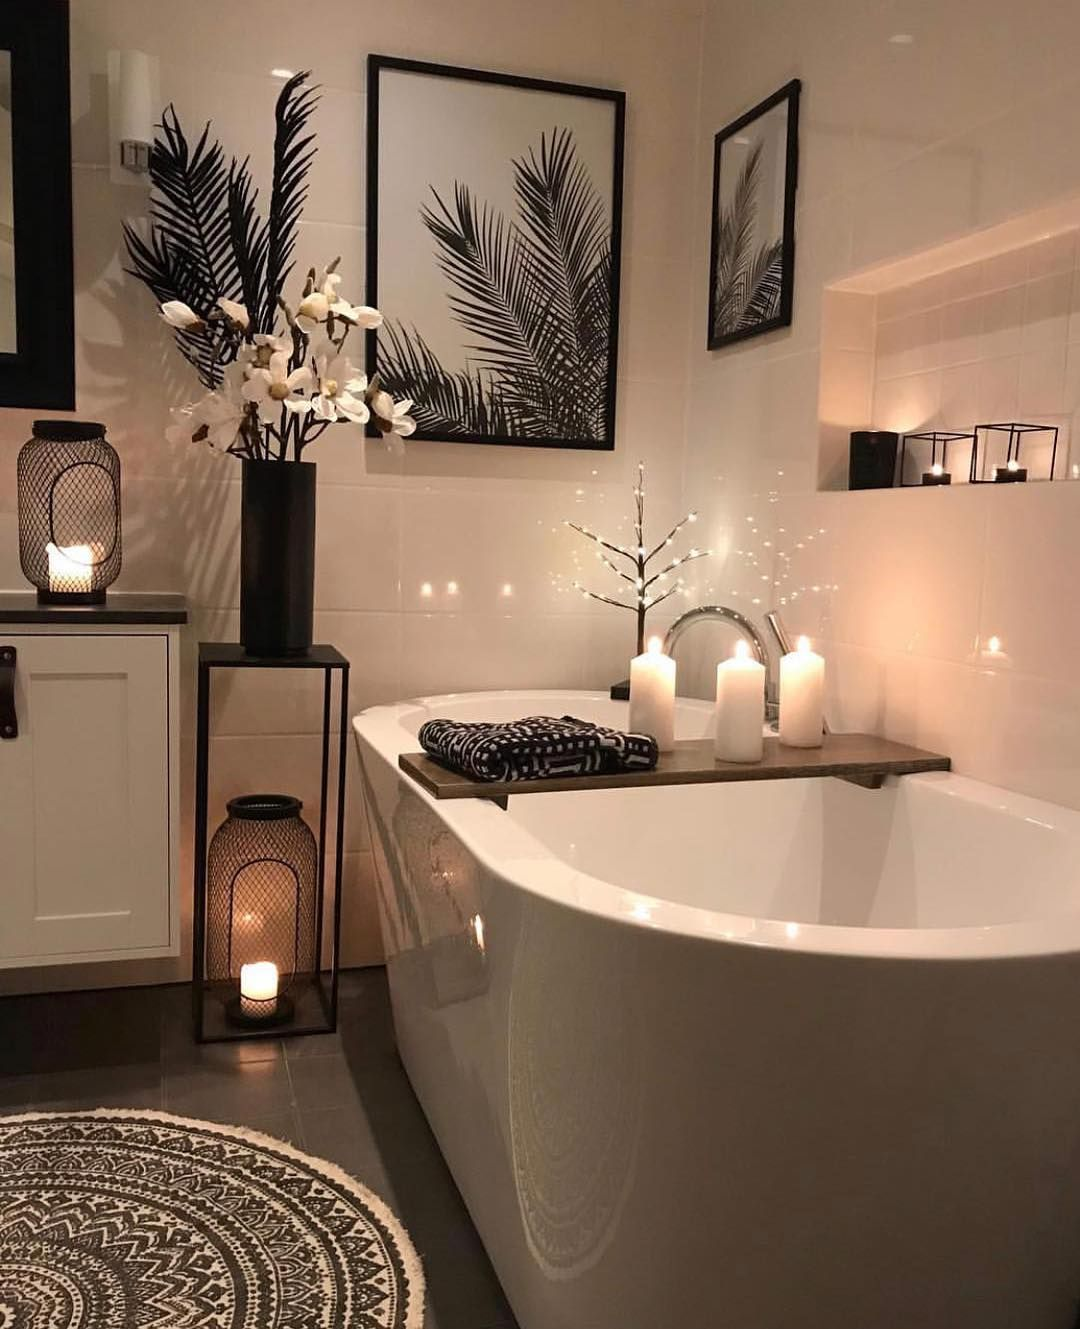 Interior Design On Instagram Amazing Bathroom Design By